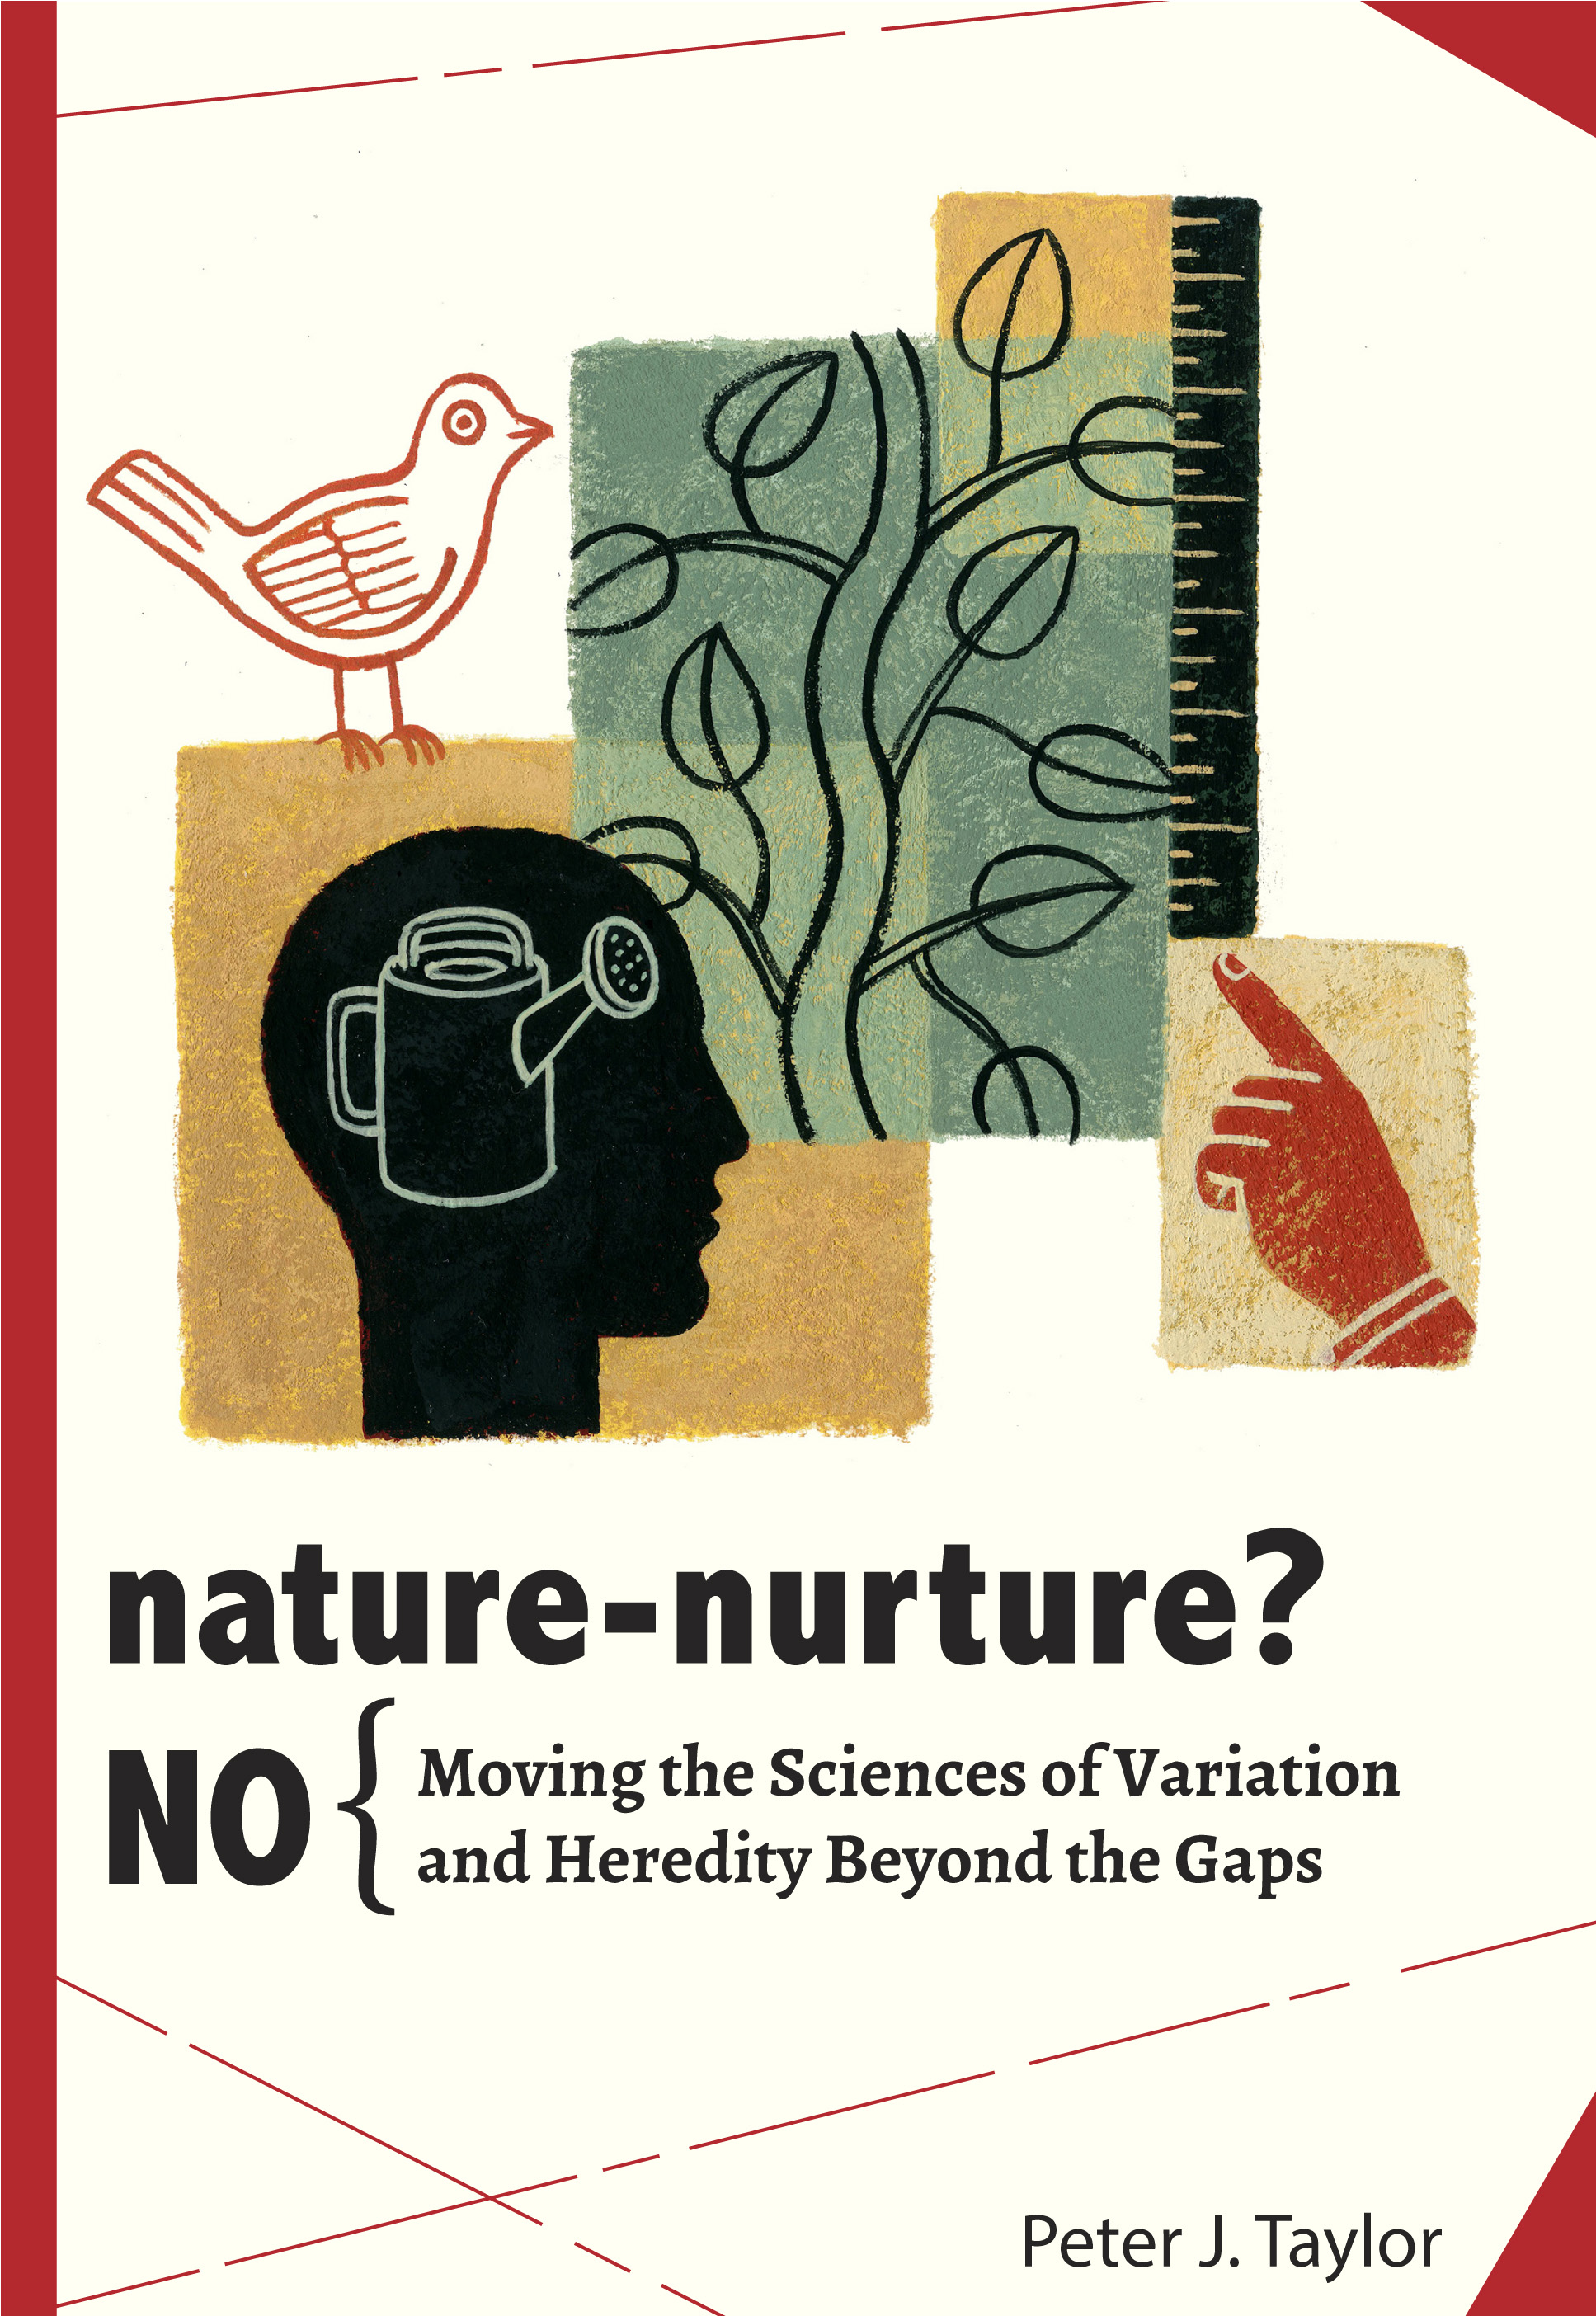 essays on nature vs nurture Nurture nature vs nurture is a psychology term related to whether heredity or environment has a greater impact on human psychological development (as in behavior, habits, intelligence, personality, sexuality and so on).